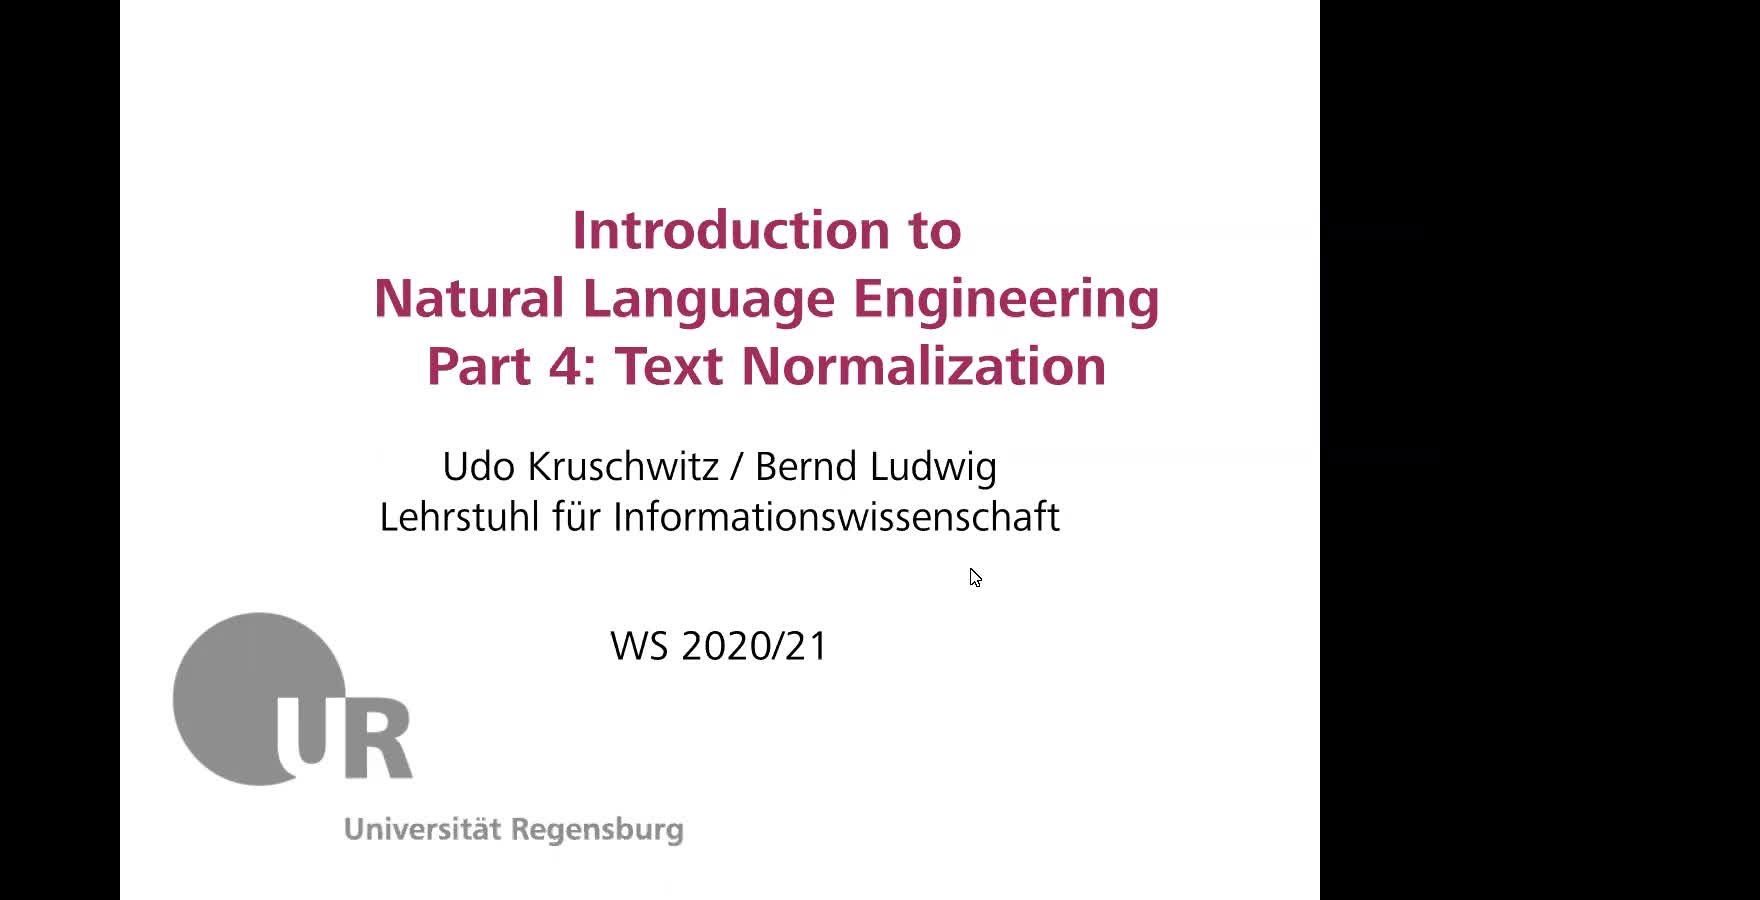 Introduction to Natural Language Engineering 1 / Informationslinguistik 1 - Lecture 4 (Text normalization / Textnormalisierung )